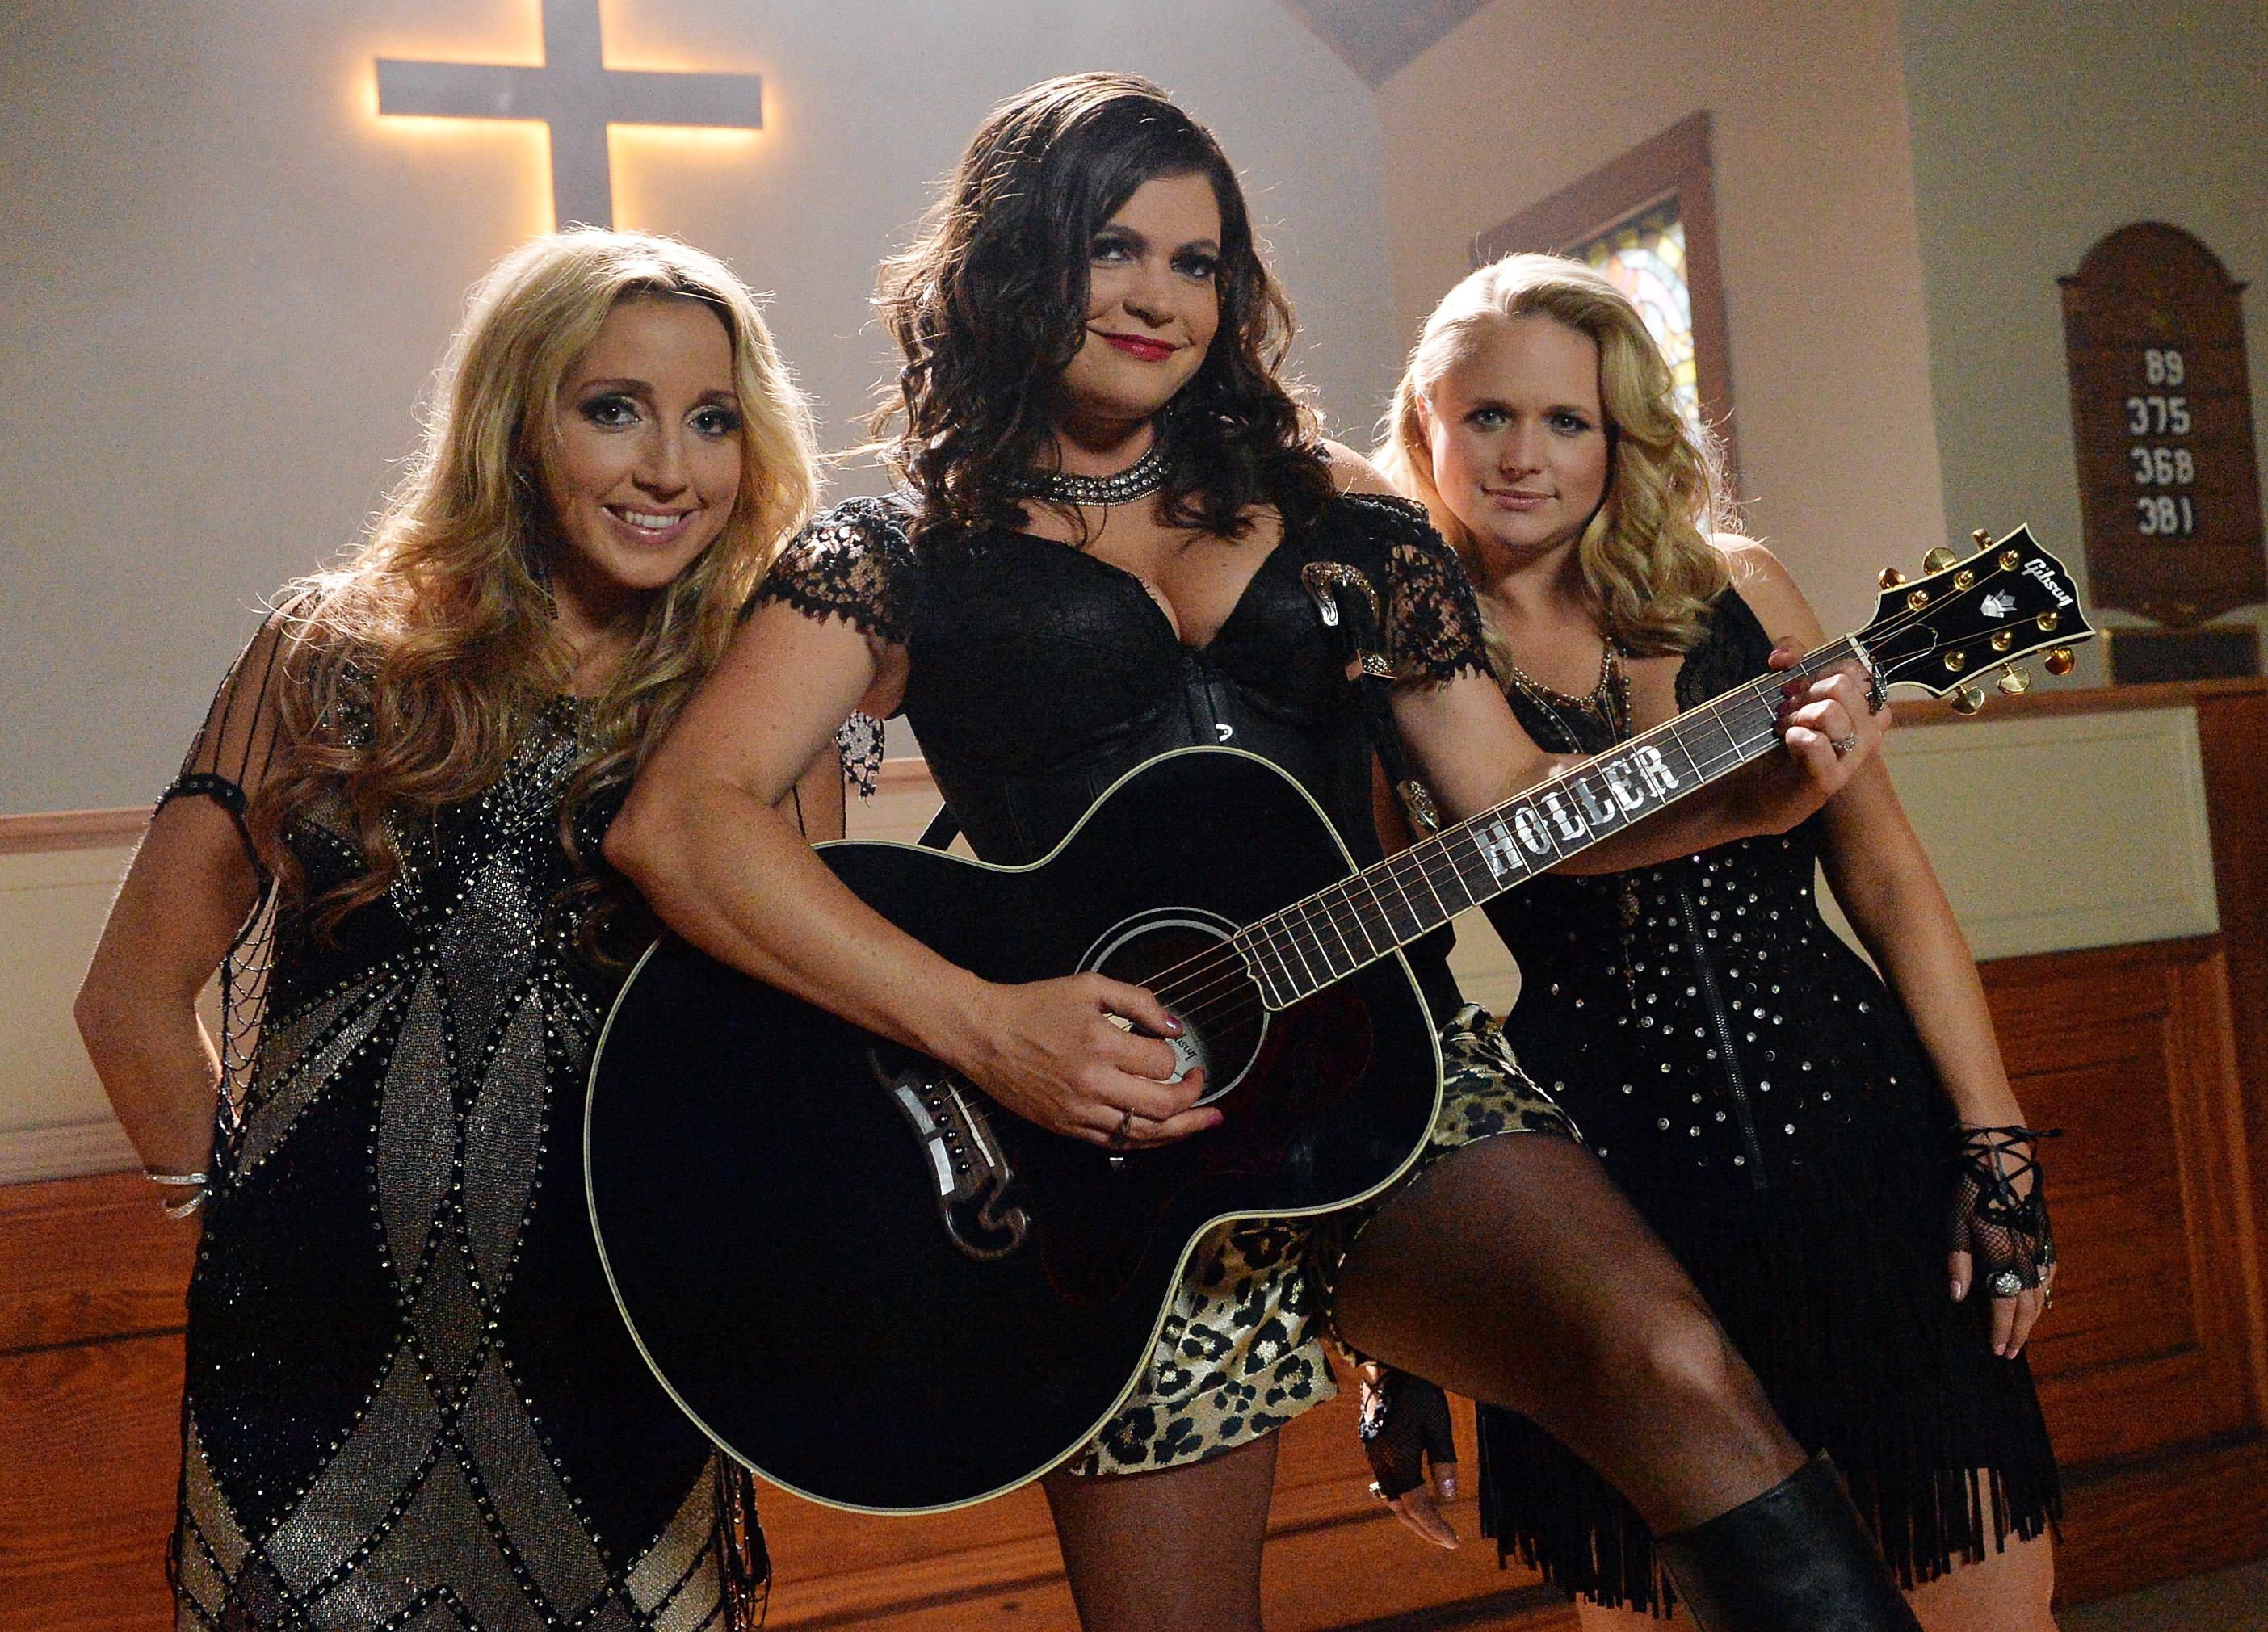 De 25 van 2018: 6 Pistol Annies – Interstate Gospel